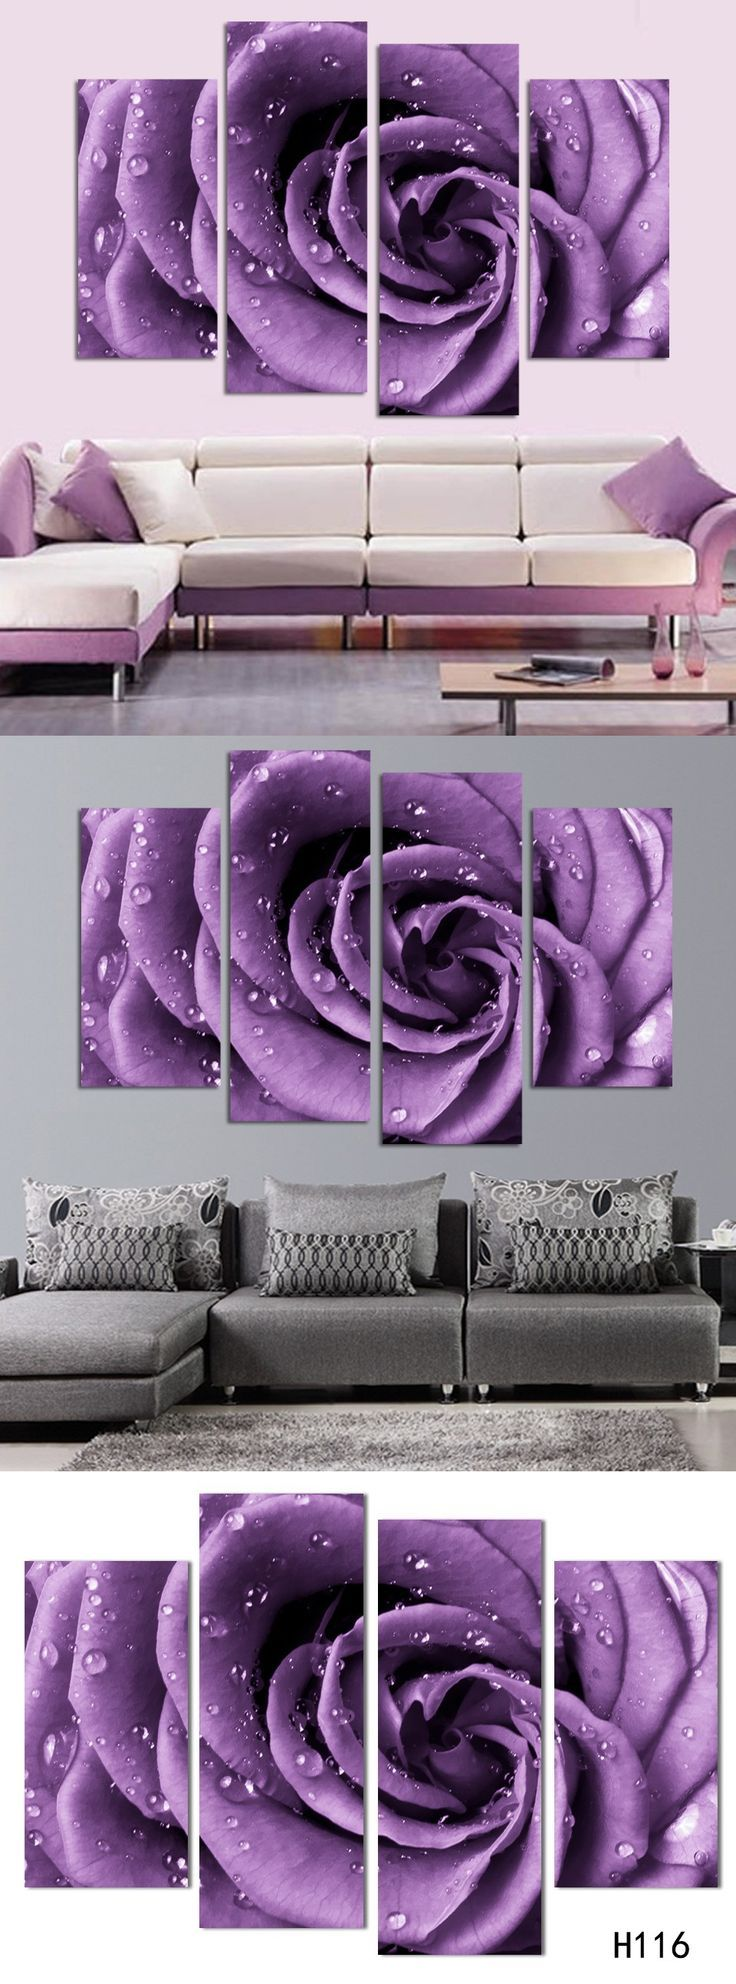 best 25+ purple wall decor ideas on pinterest | purple bathroom